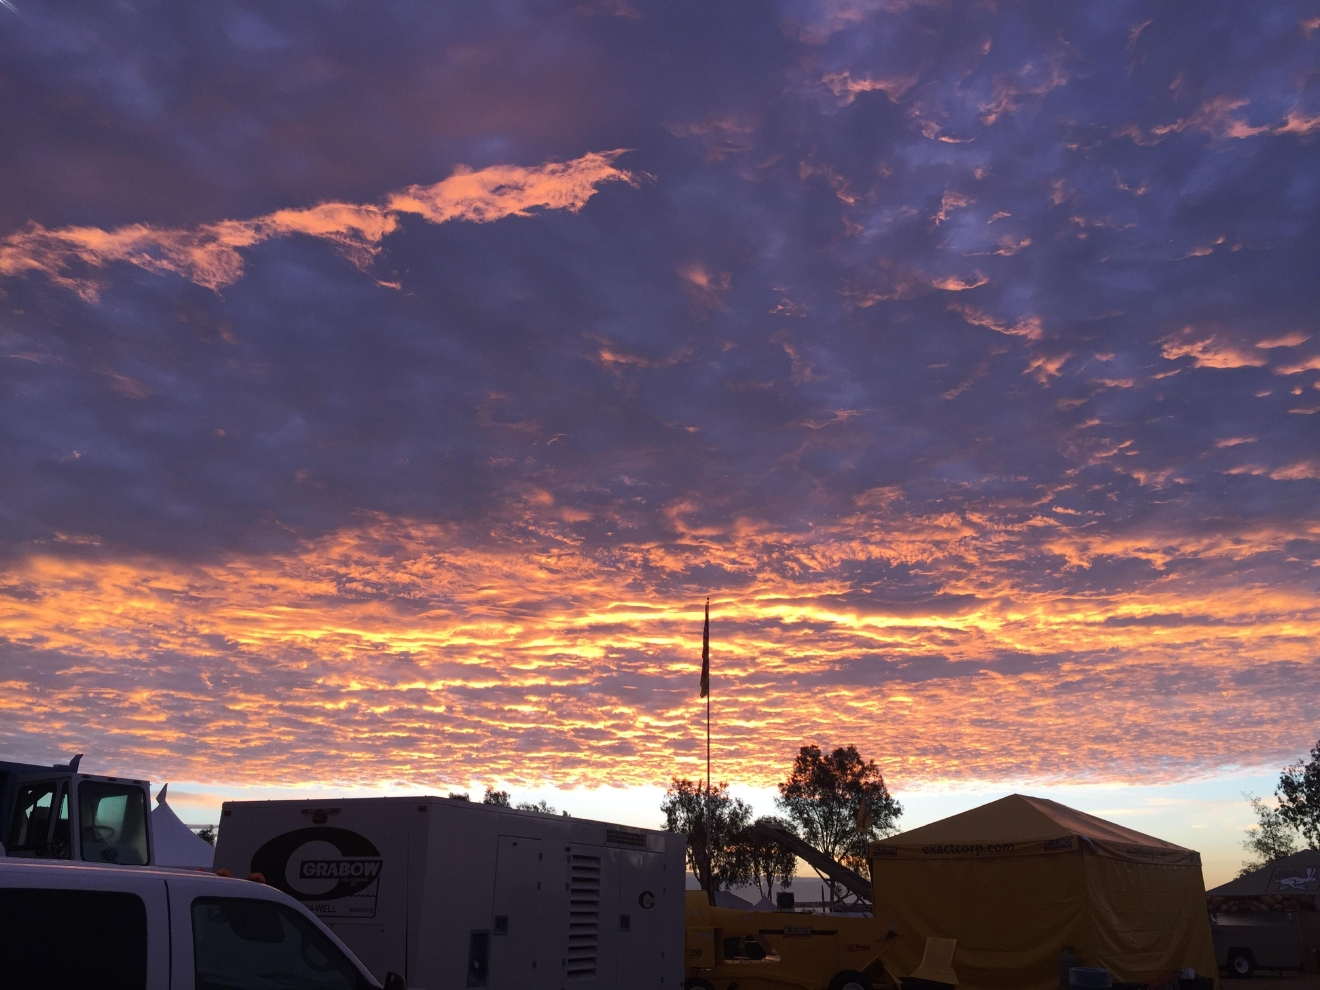 Sunrise before the storm in Tulare by Wendi Lane/KMPH 2-16-17